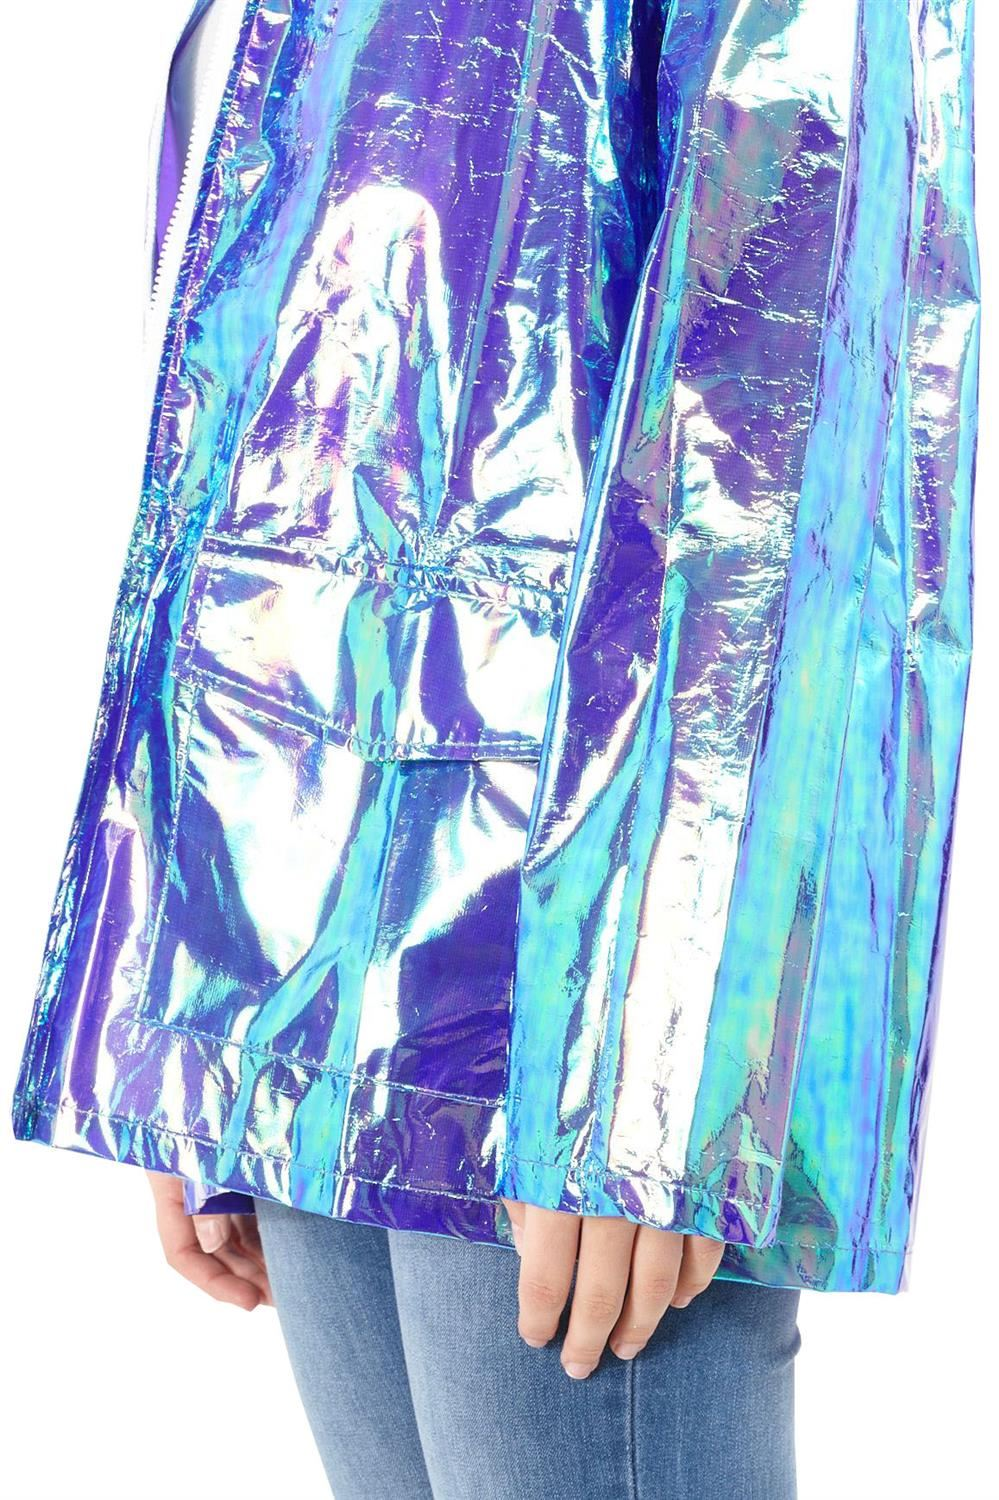 Womens-Waterproof-Holographic-Zipped-Neon-Festival-Mac-Jacket-Parka-Raincoat thumbnail 10